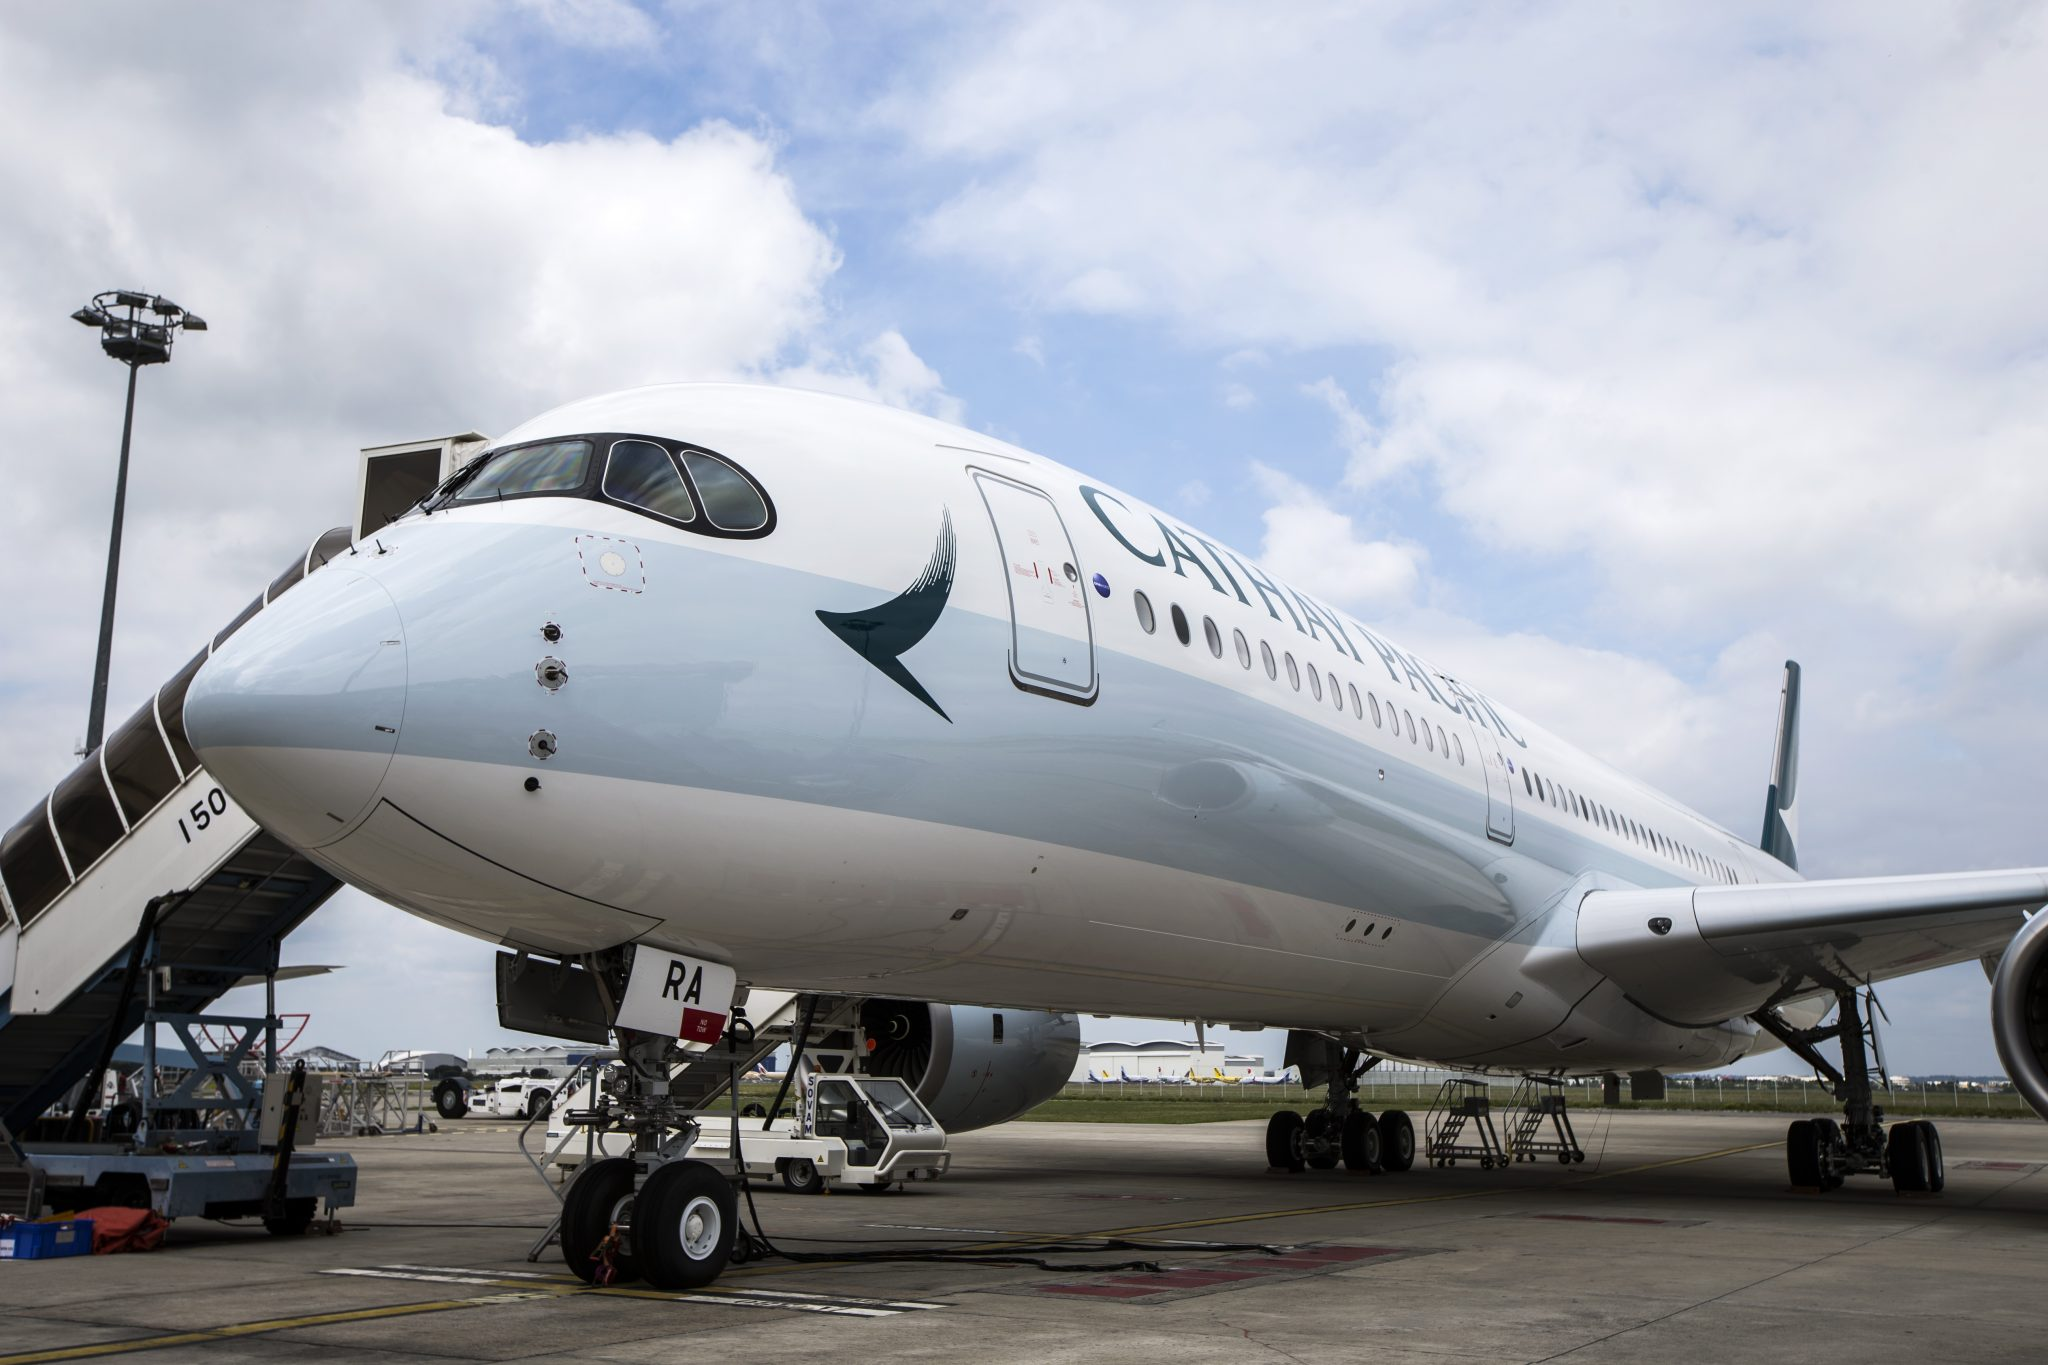 Cathay Pacific Reports Growth in Passenger Numbers Despite Protests But Future Looks Less Certain